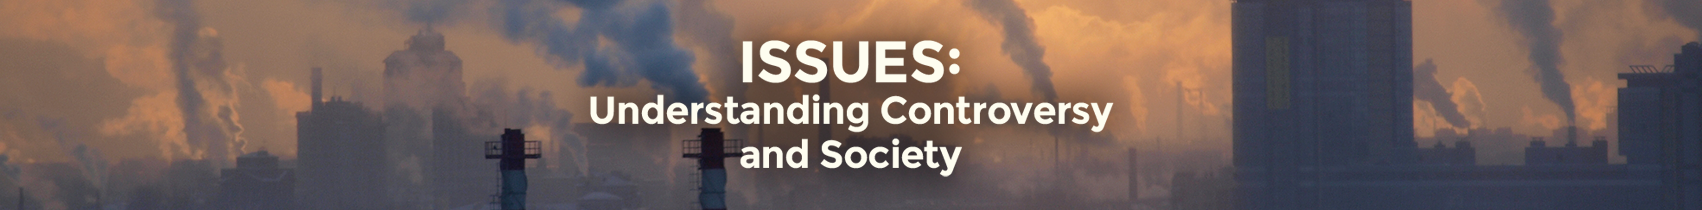 ABC-CLIO Solutions - Issues: Understanding Controversy and Society